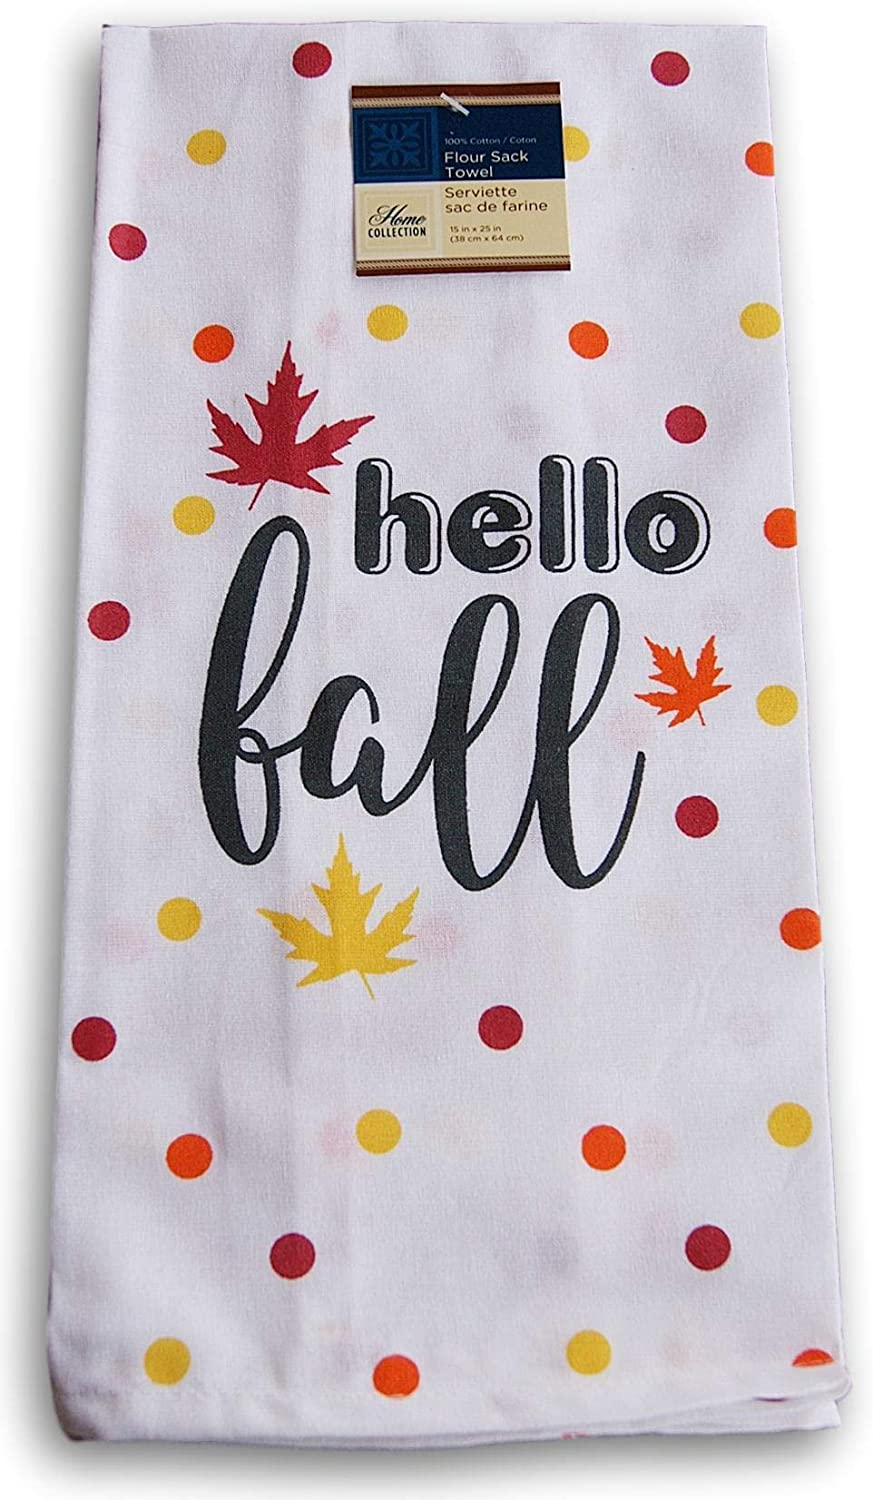 Home Linens Flour Sack Kitchen Towel - Hello Fall - 15 x 25 Inches